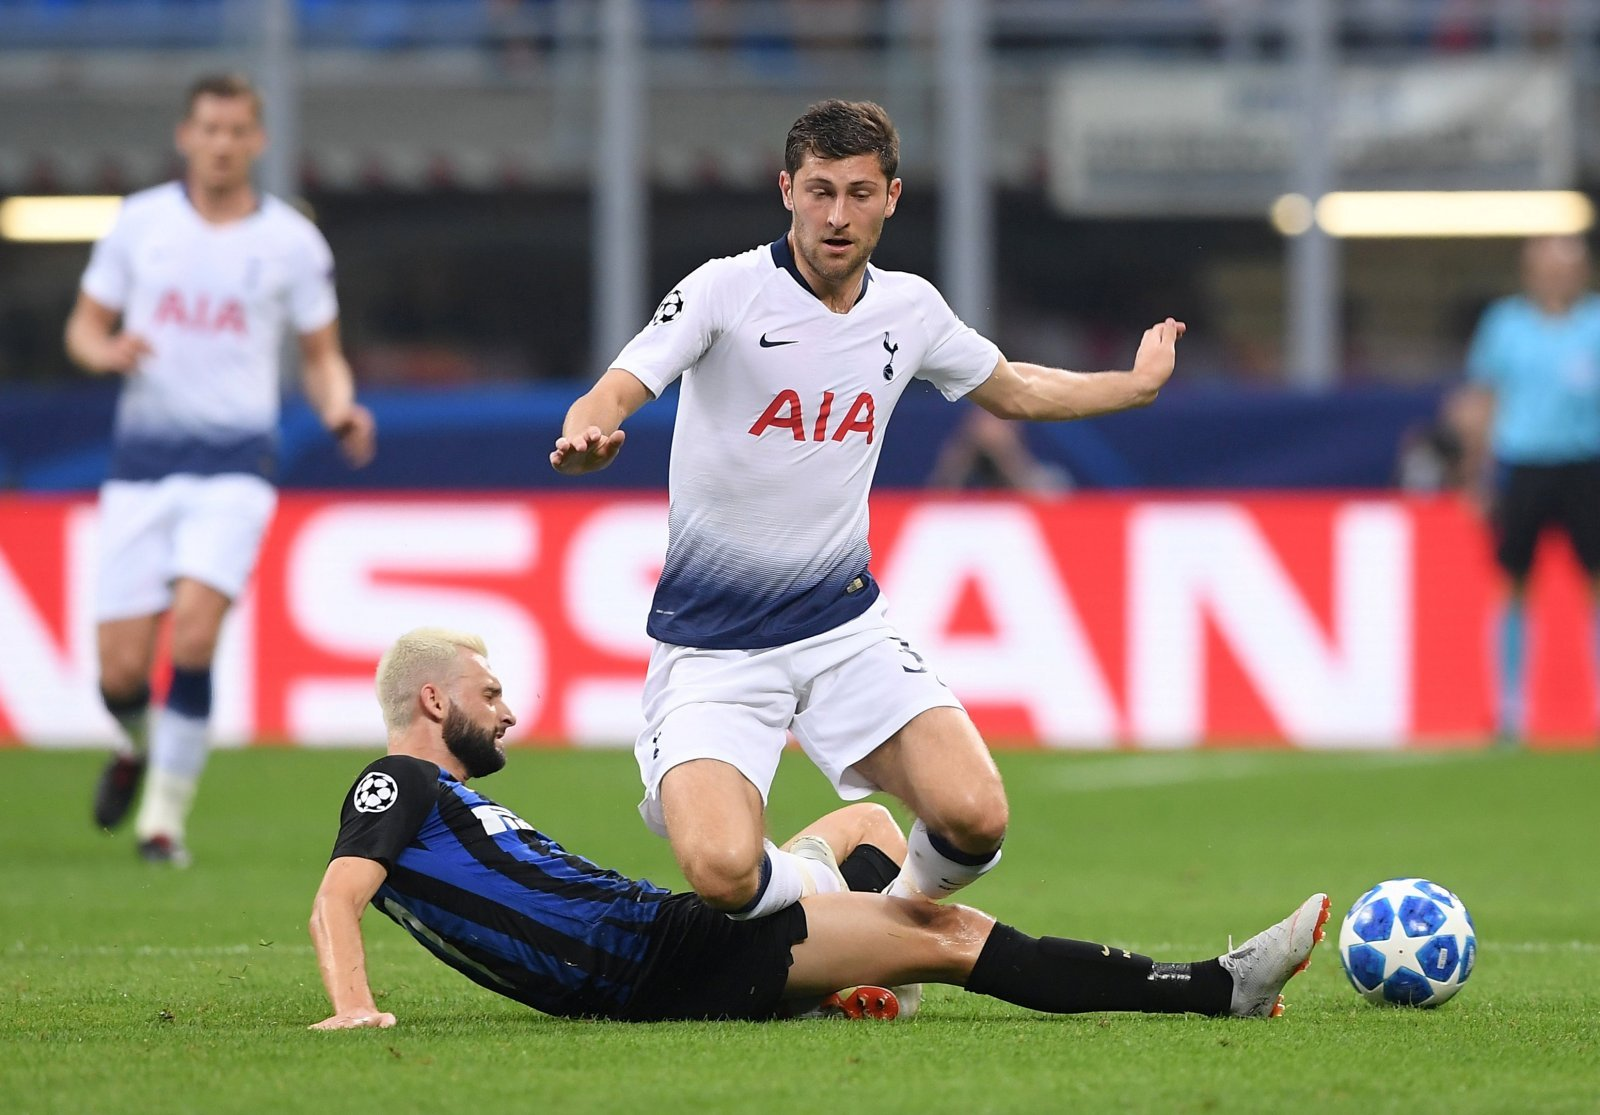 Tottenham fans on Twitter couldn't get enough of sublime Ben Davies yesterday